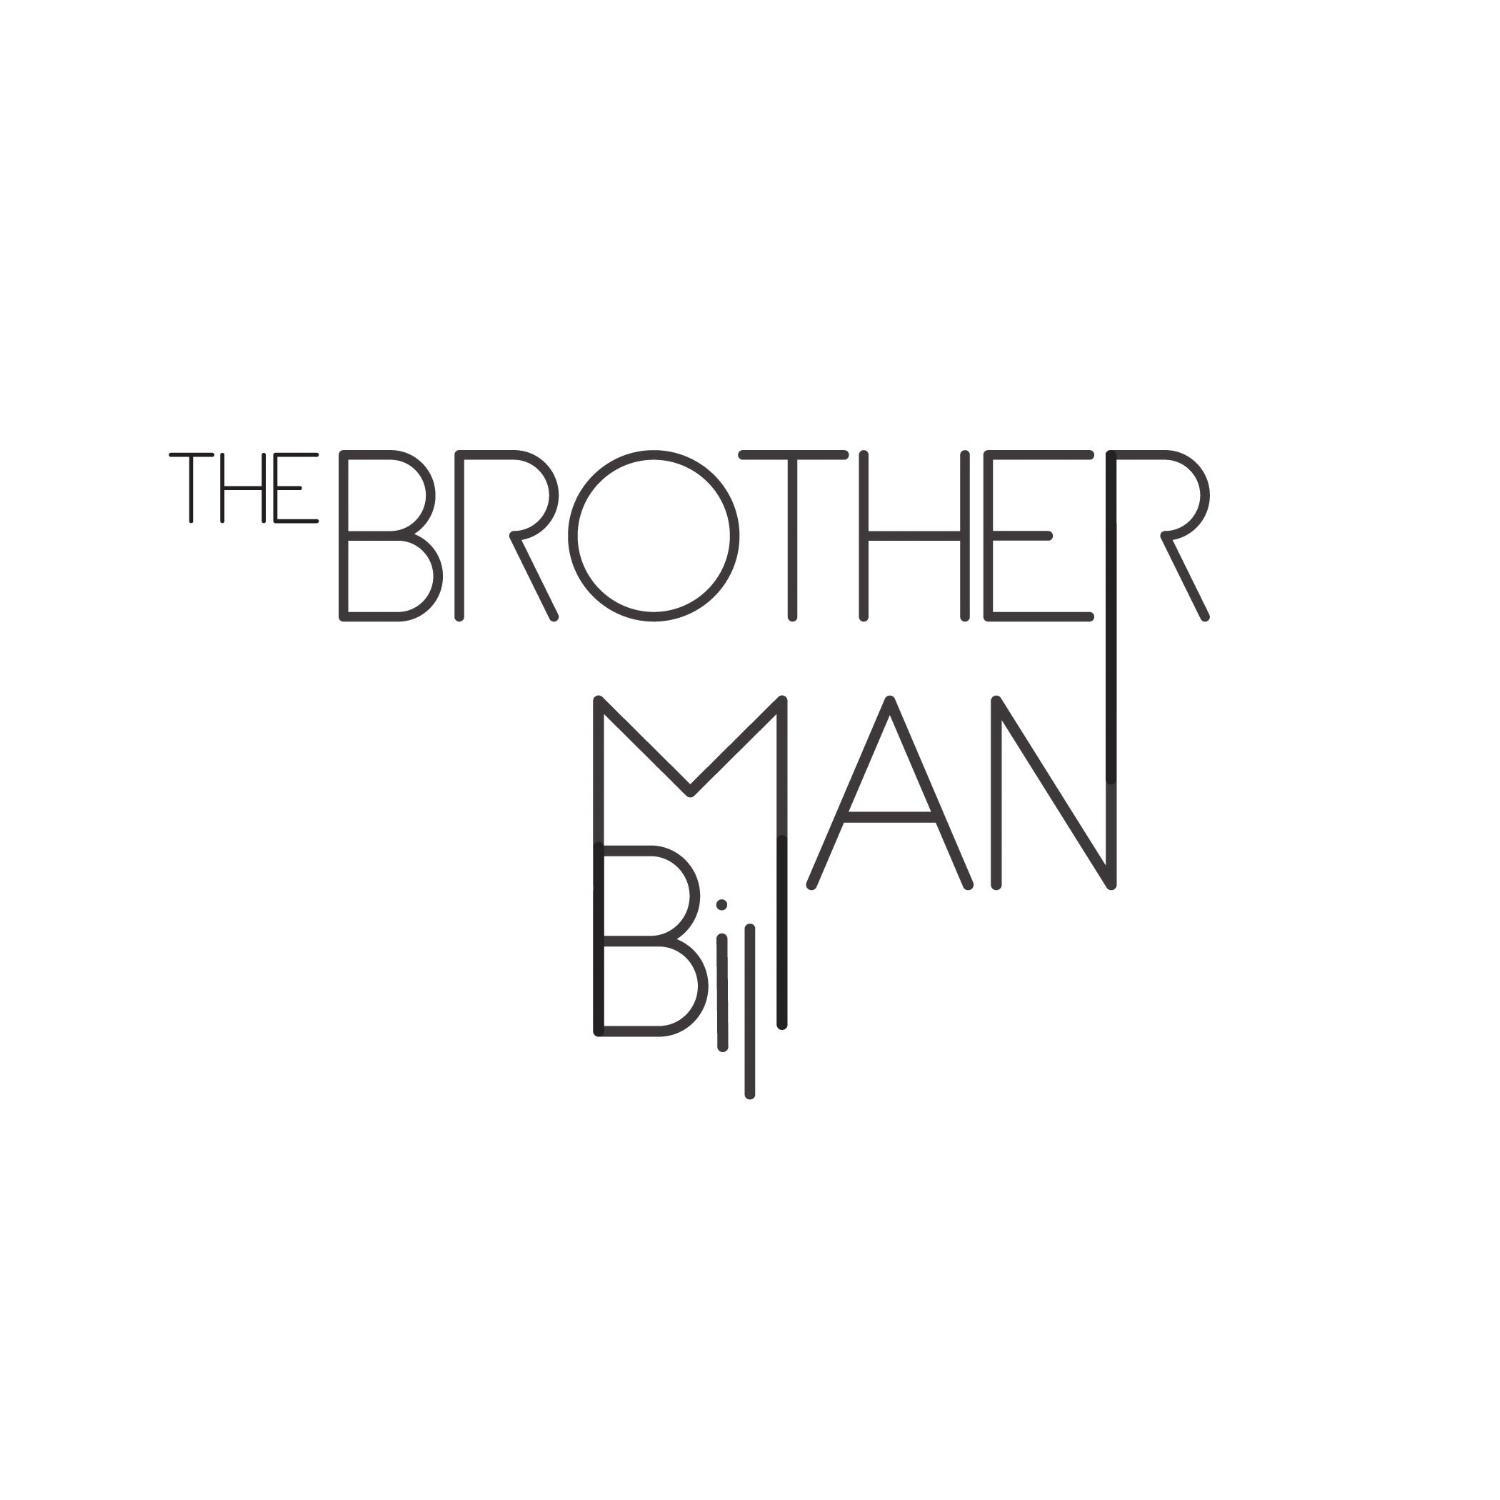 Brotherman bill